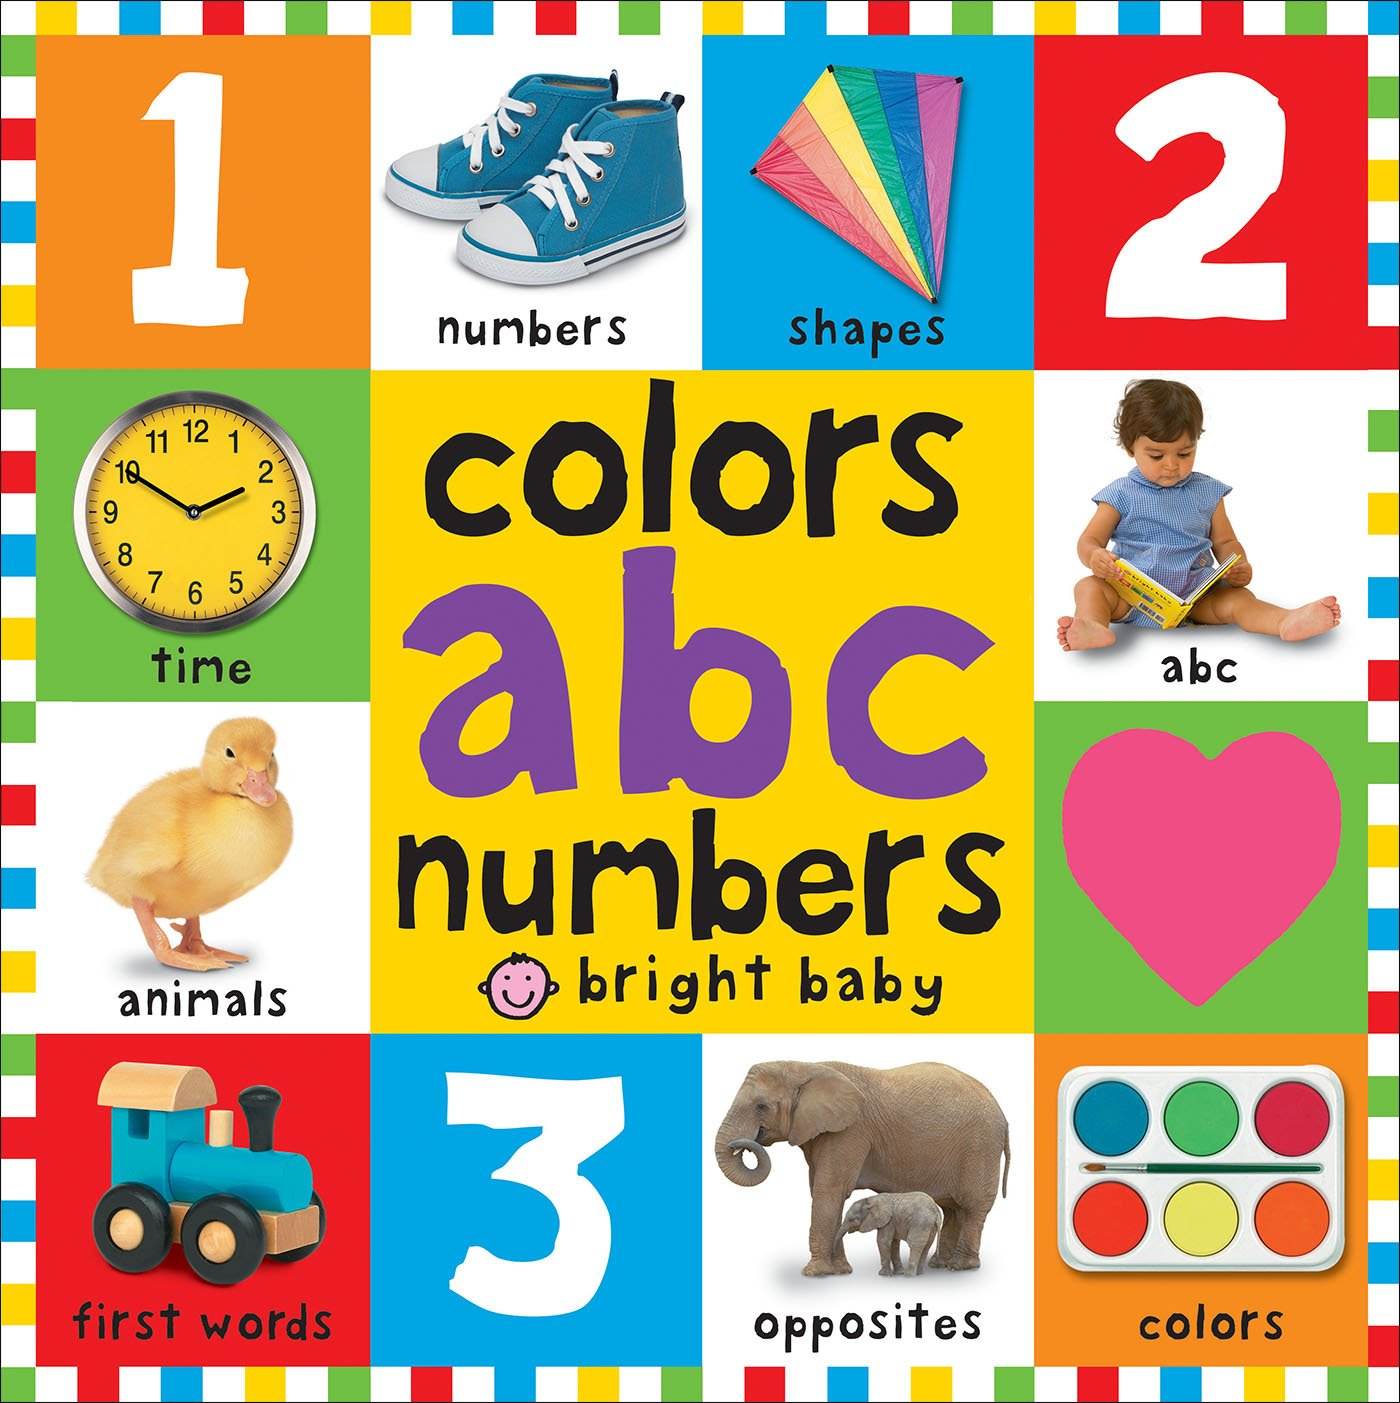 Amazon Bright Bbaby colors abc numbers first words First